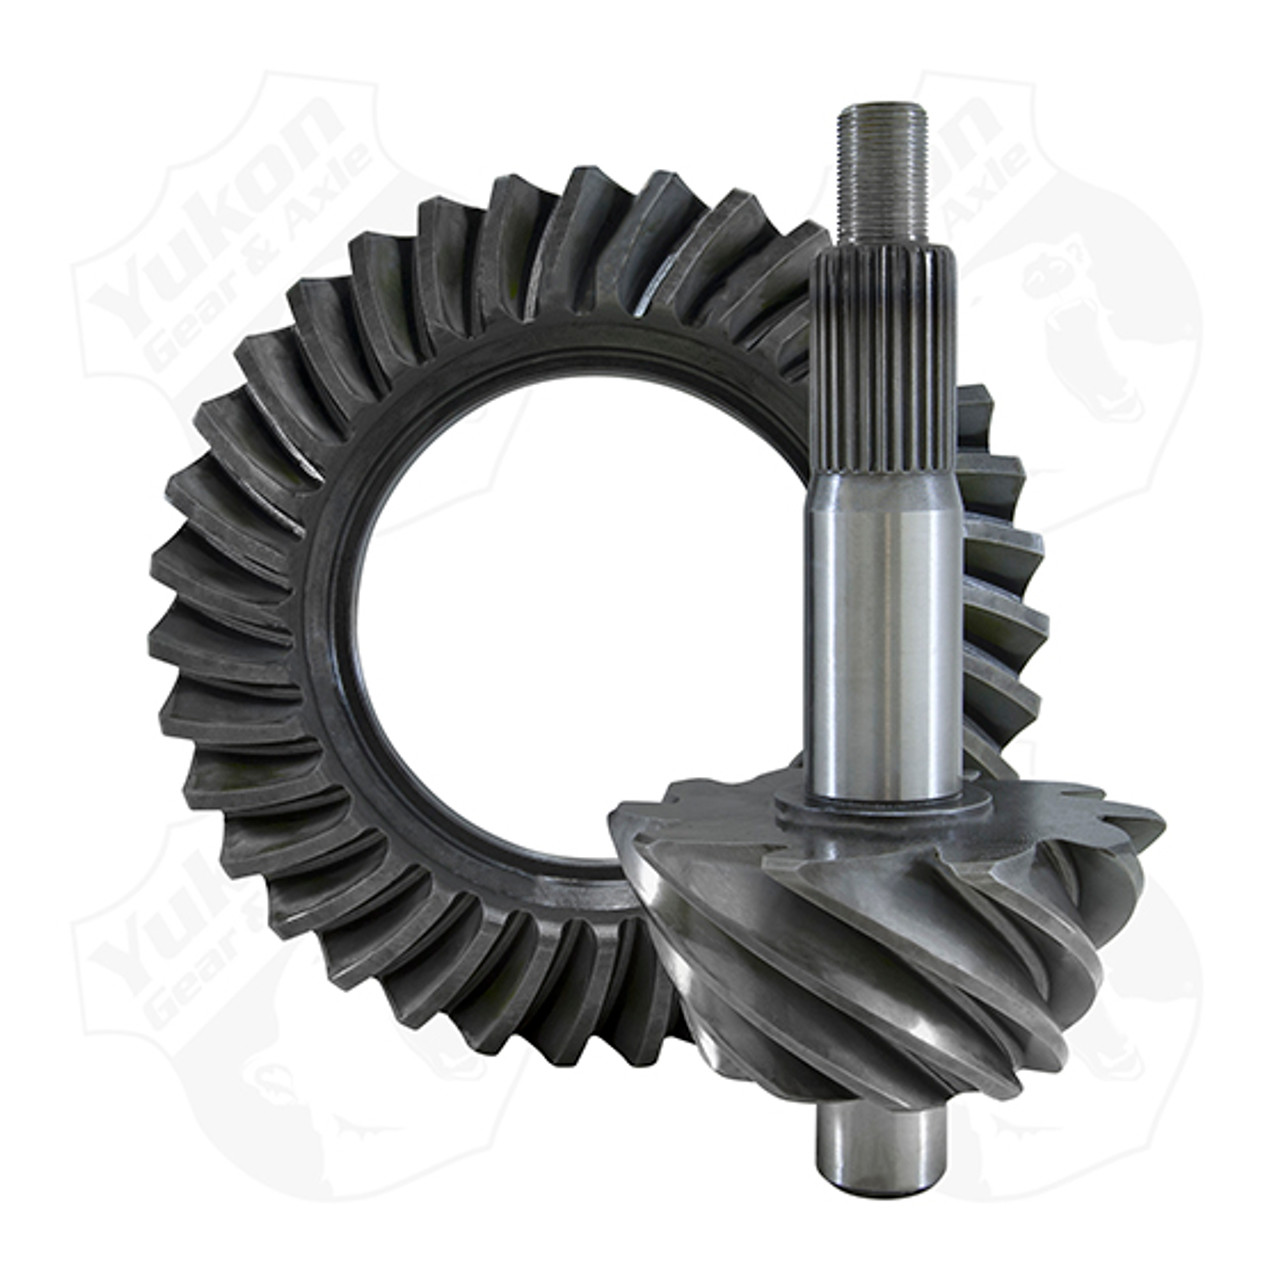 9 Ford Ring /& Pinion Gearset 3.25 Ratio